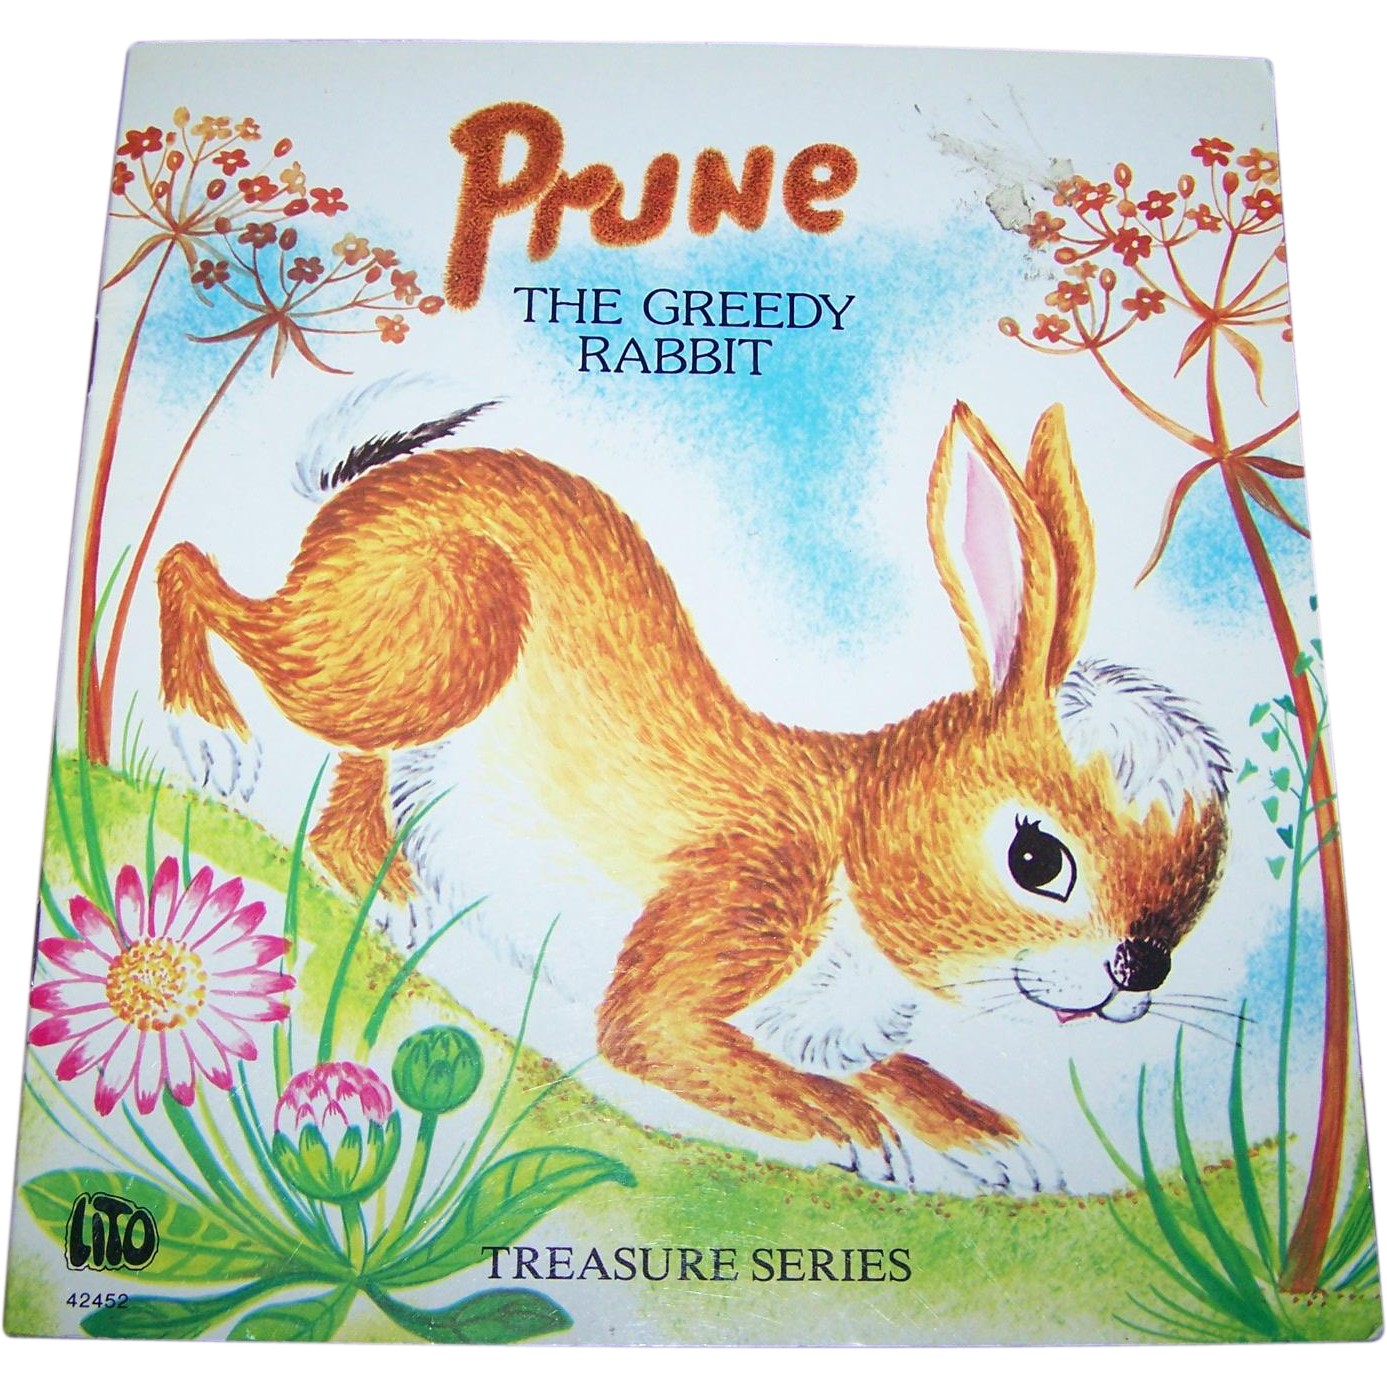 A Charming Soft Cover Children's Book PRUNE The Greedy Rabbit Treasures Series